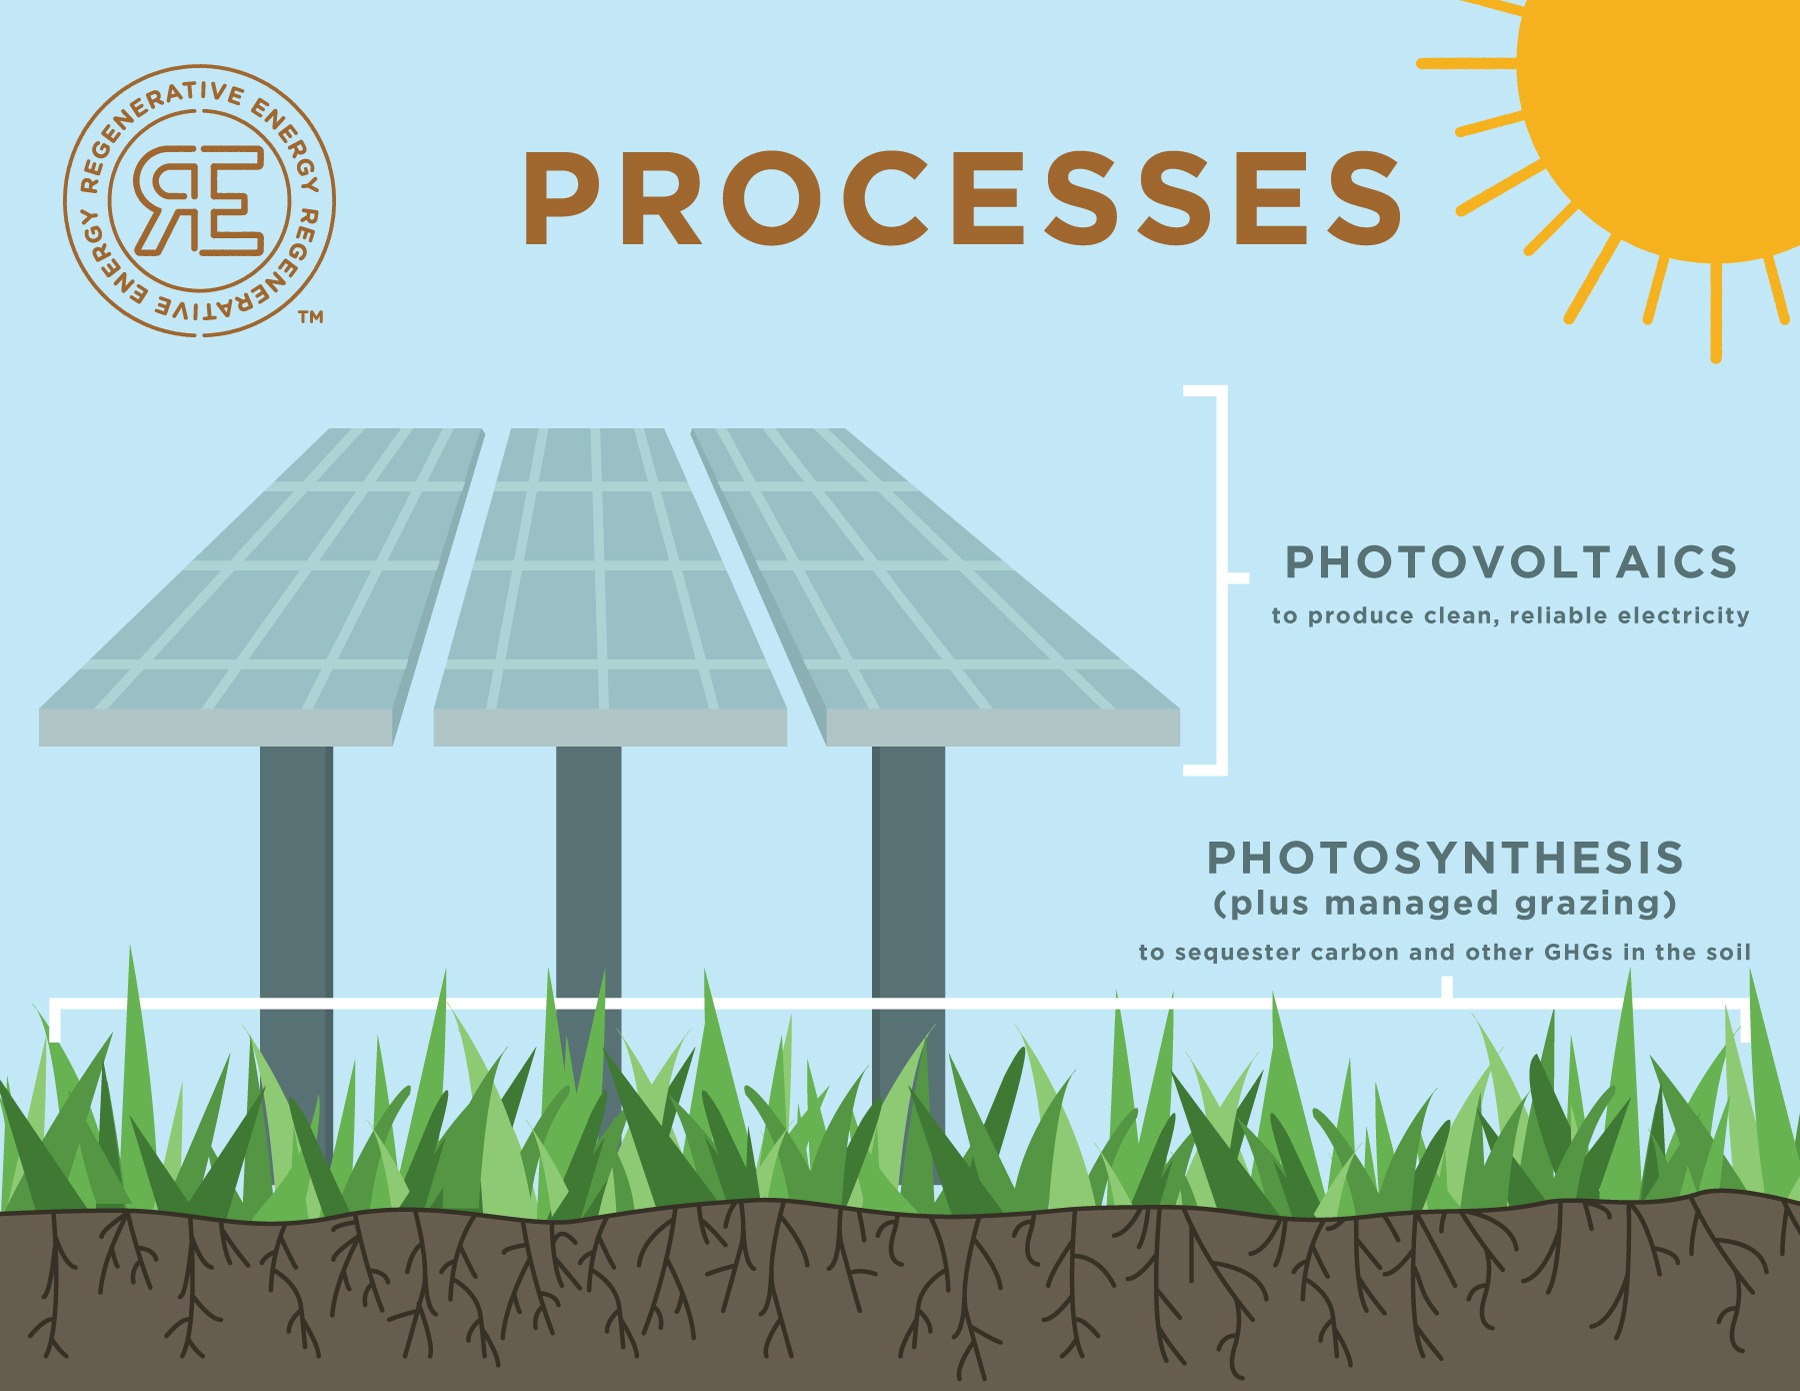 regenerative energy process graphic